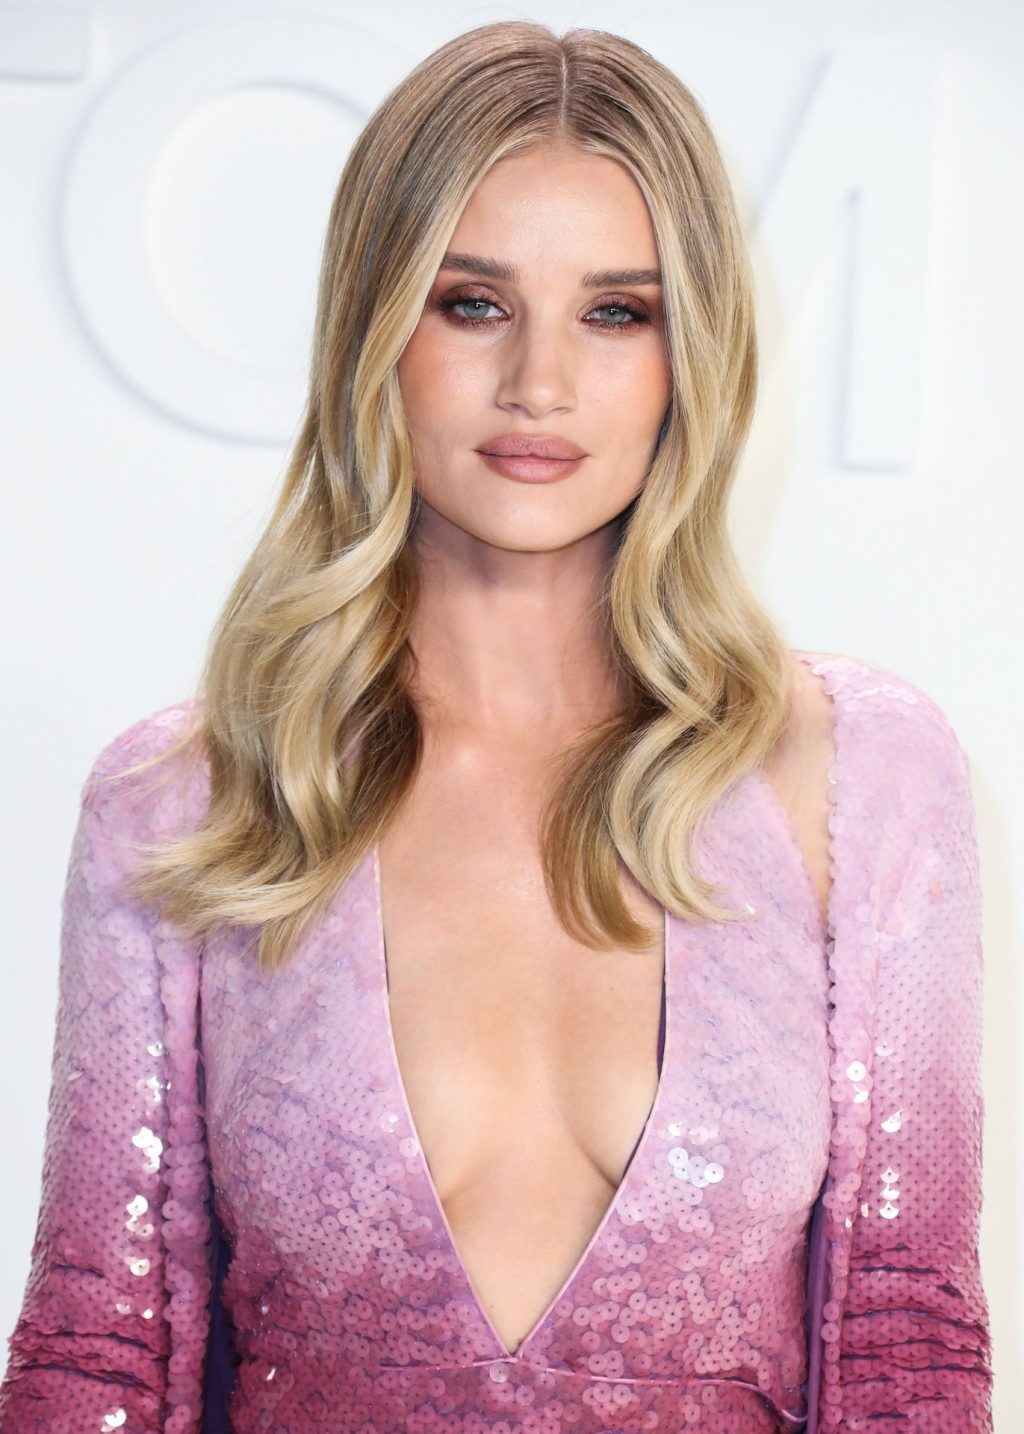 Rosie Huntington Whiteley Sexy The Fappening Blog 64 1024x1434 - Rosie Huntington-Whiteley Shows Her Cleavage at the Tom Ford Fashion Show (115 Photos)